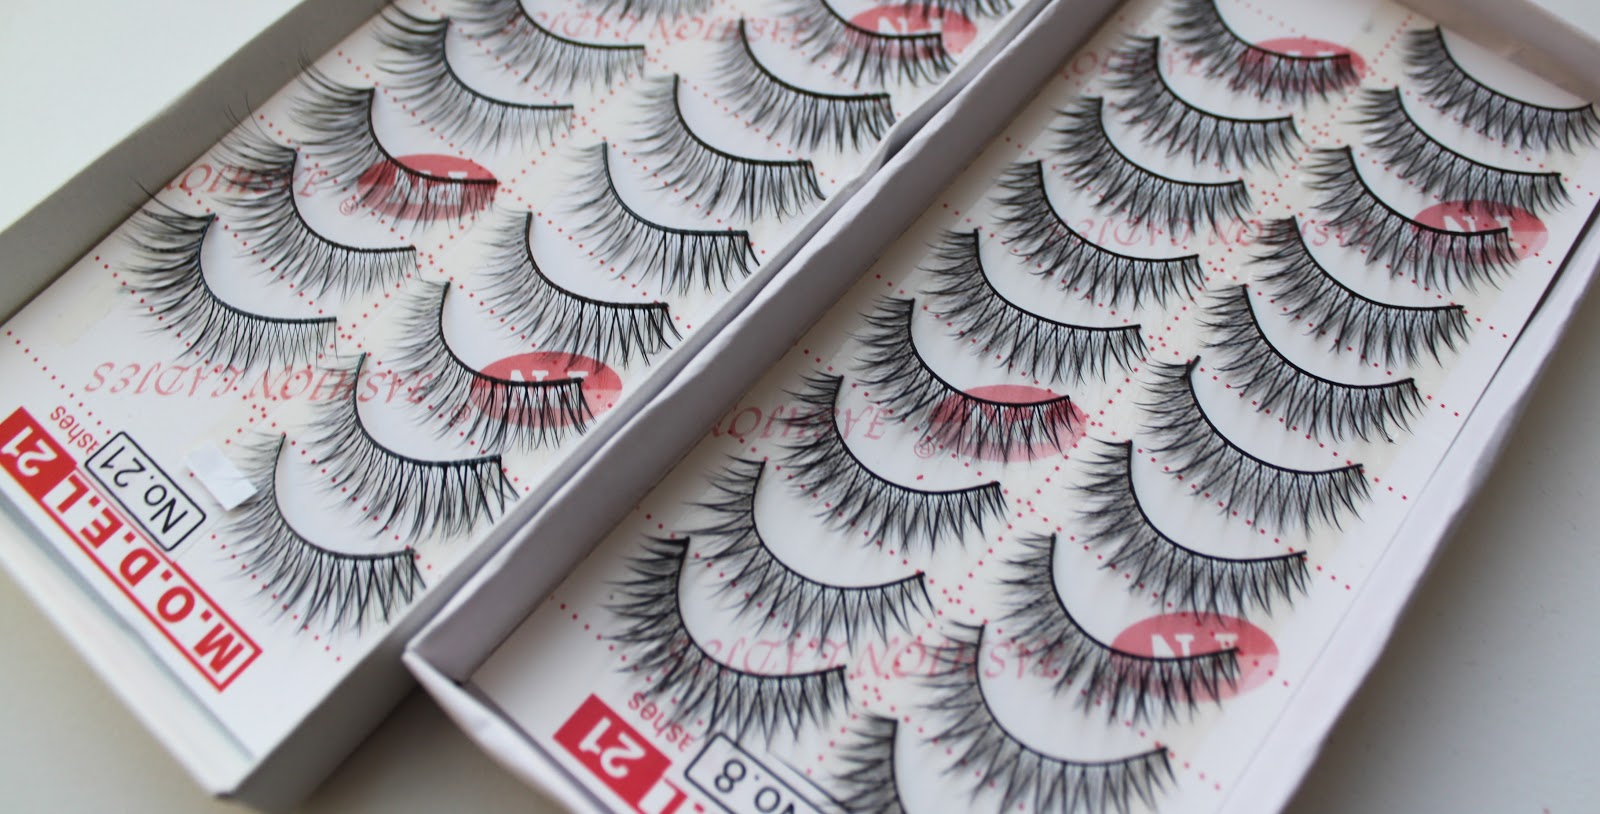 89f5b5d647e i never was a false lashes girl. i am very unsatisfied with my natural  lashes which are sparse, short and point straight downward, but i never  considered ...